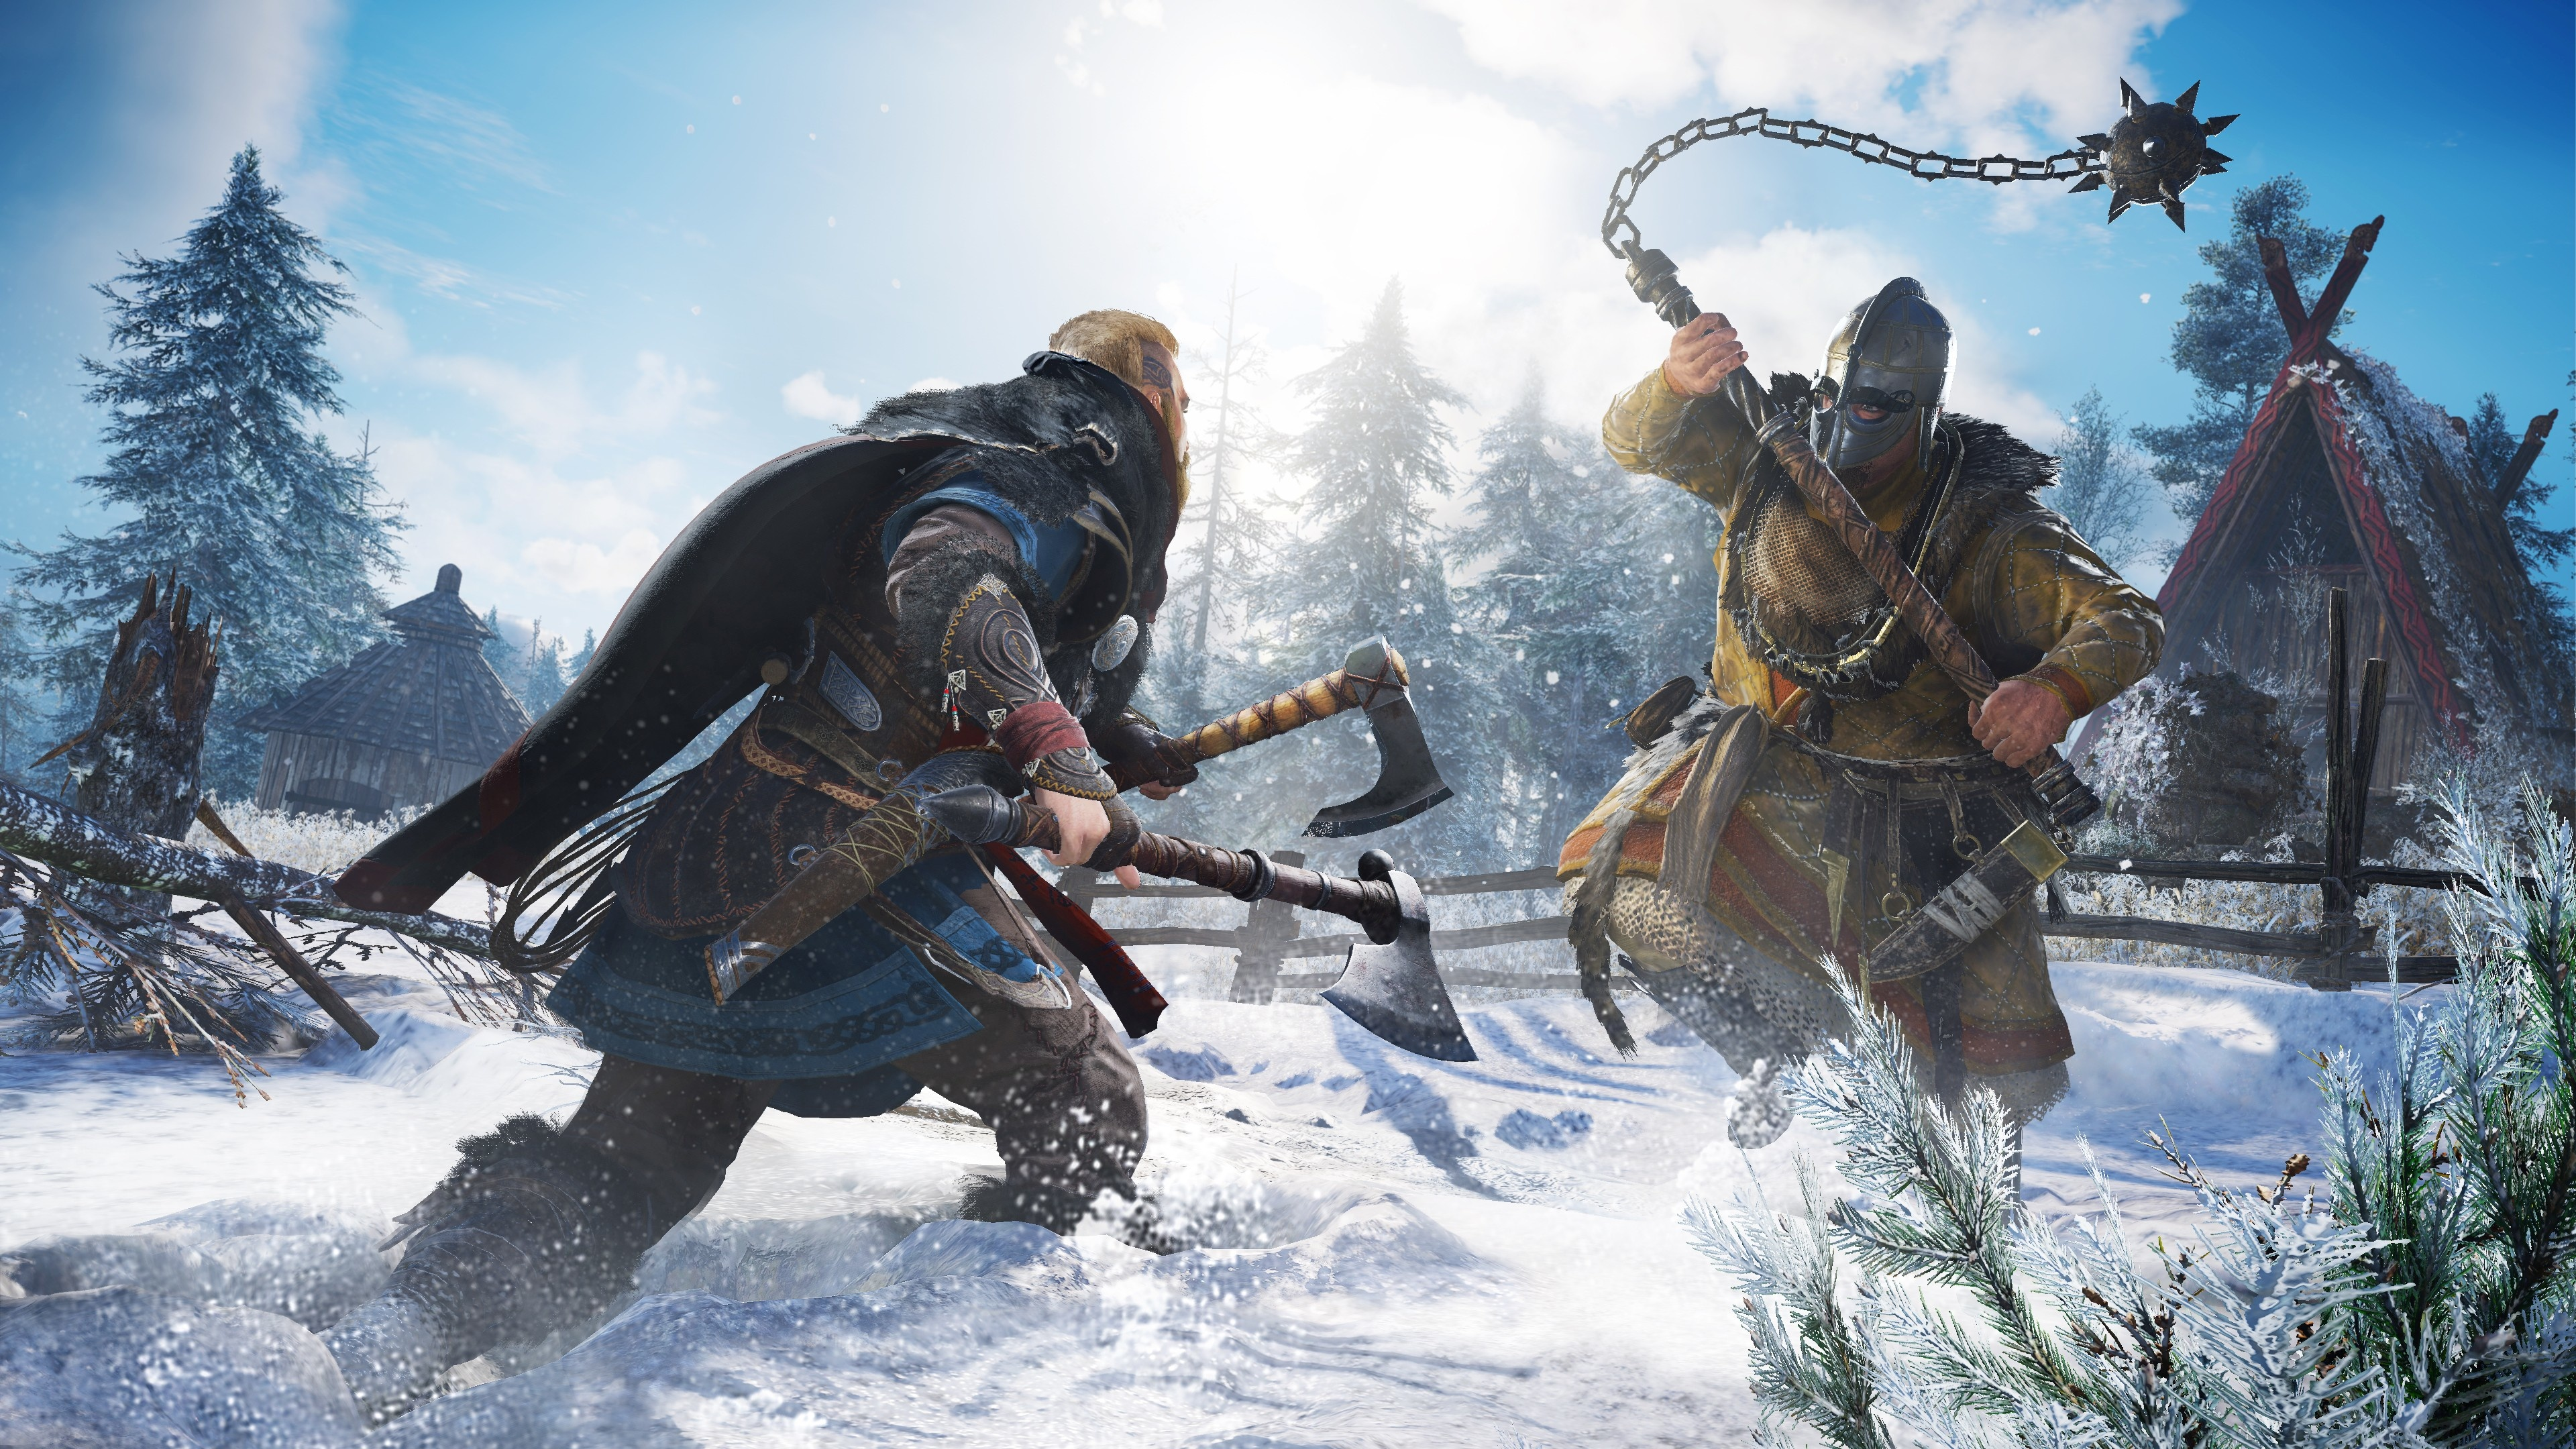 Wallpaper Of Snow Viking Warrior Valhalla Assassin S Creed Background Hd Image